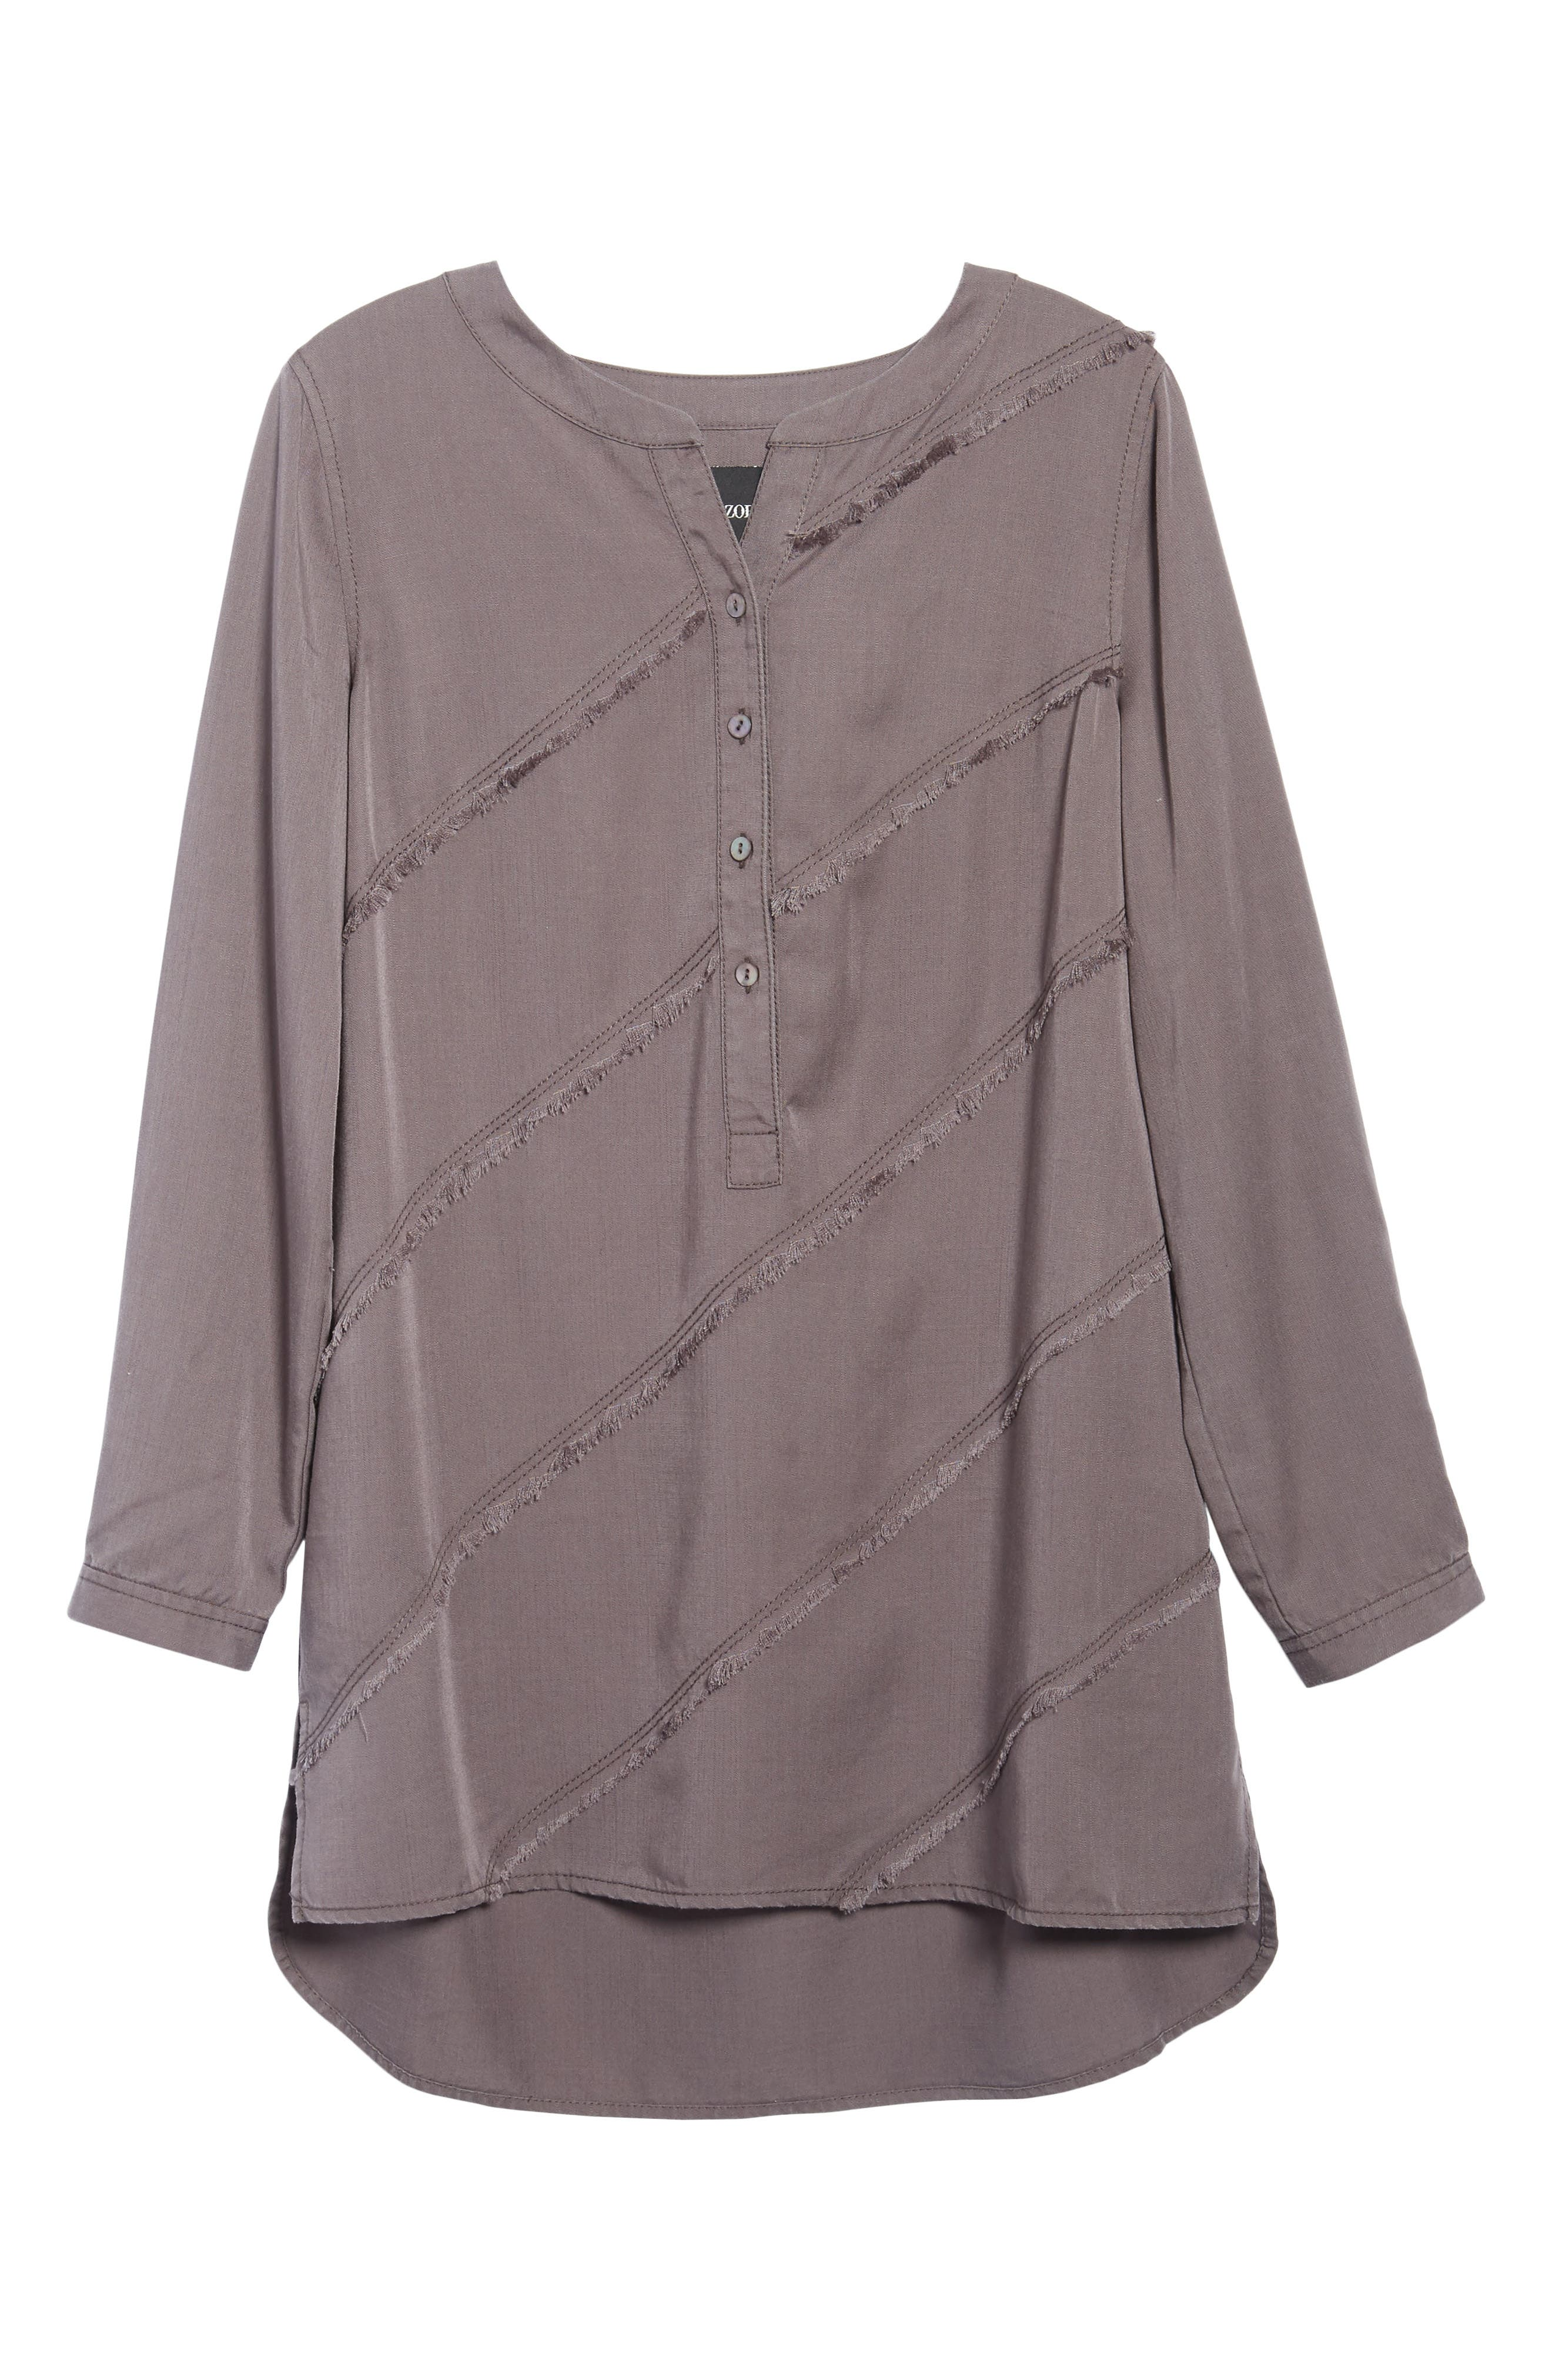 Tranquil Tunic Top,                             Alternate thumbnail 6, color,                             Warm Grey